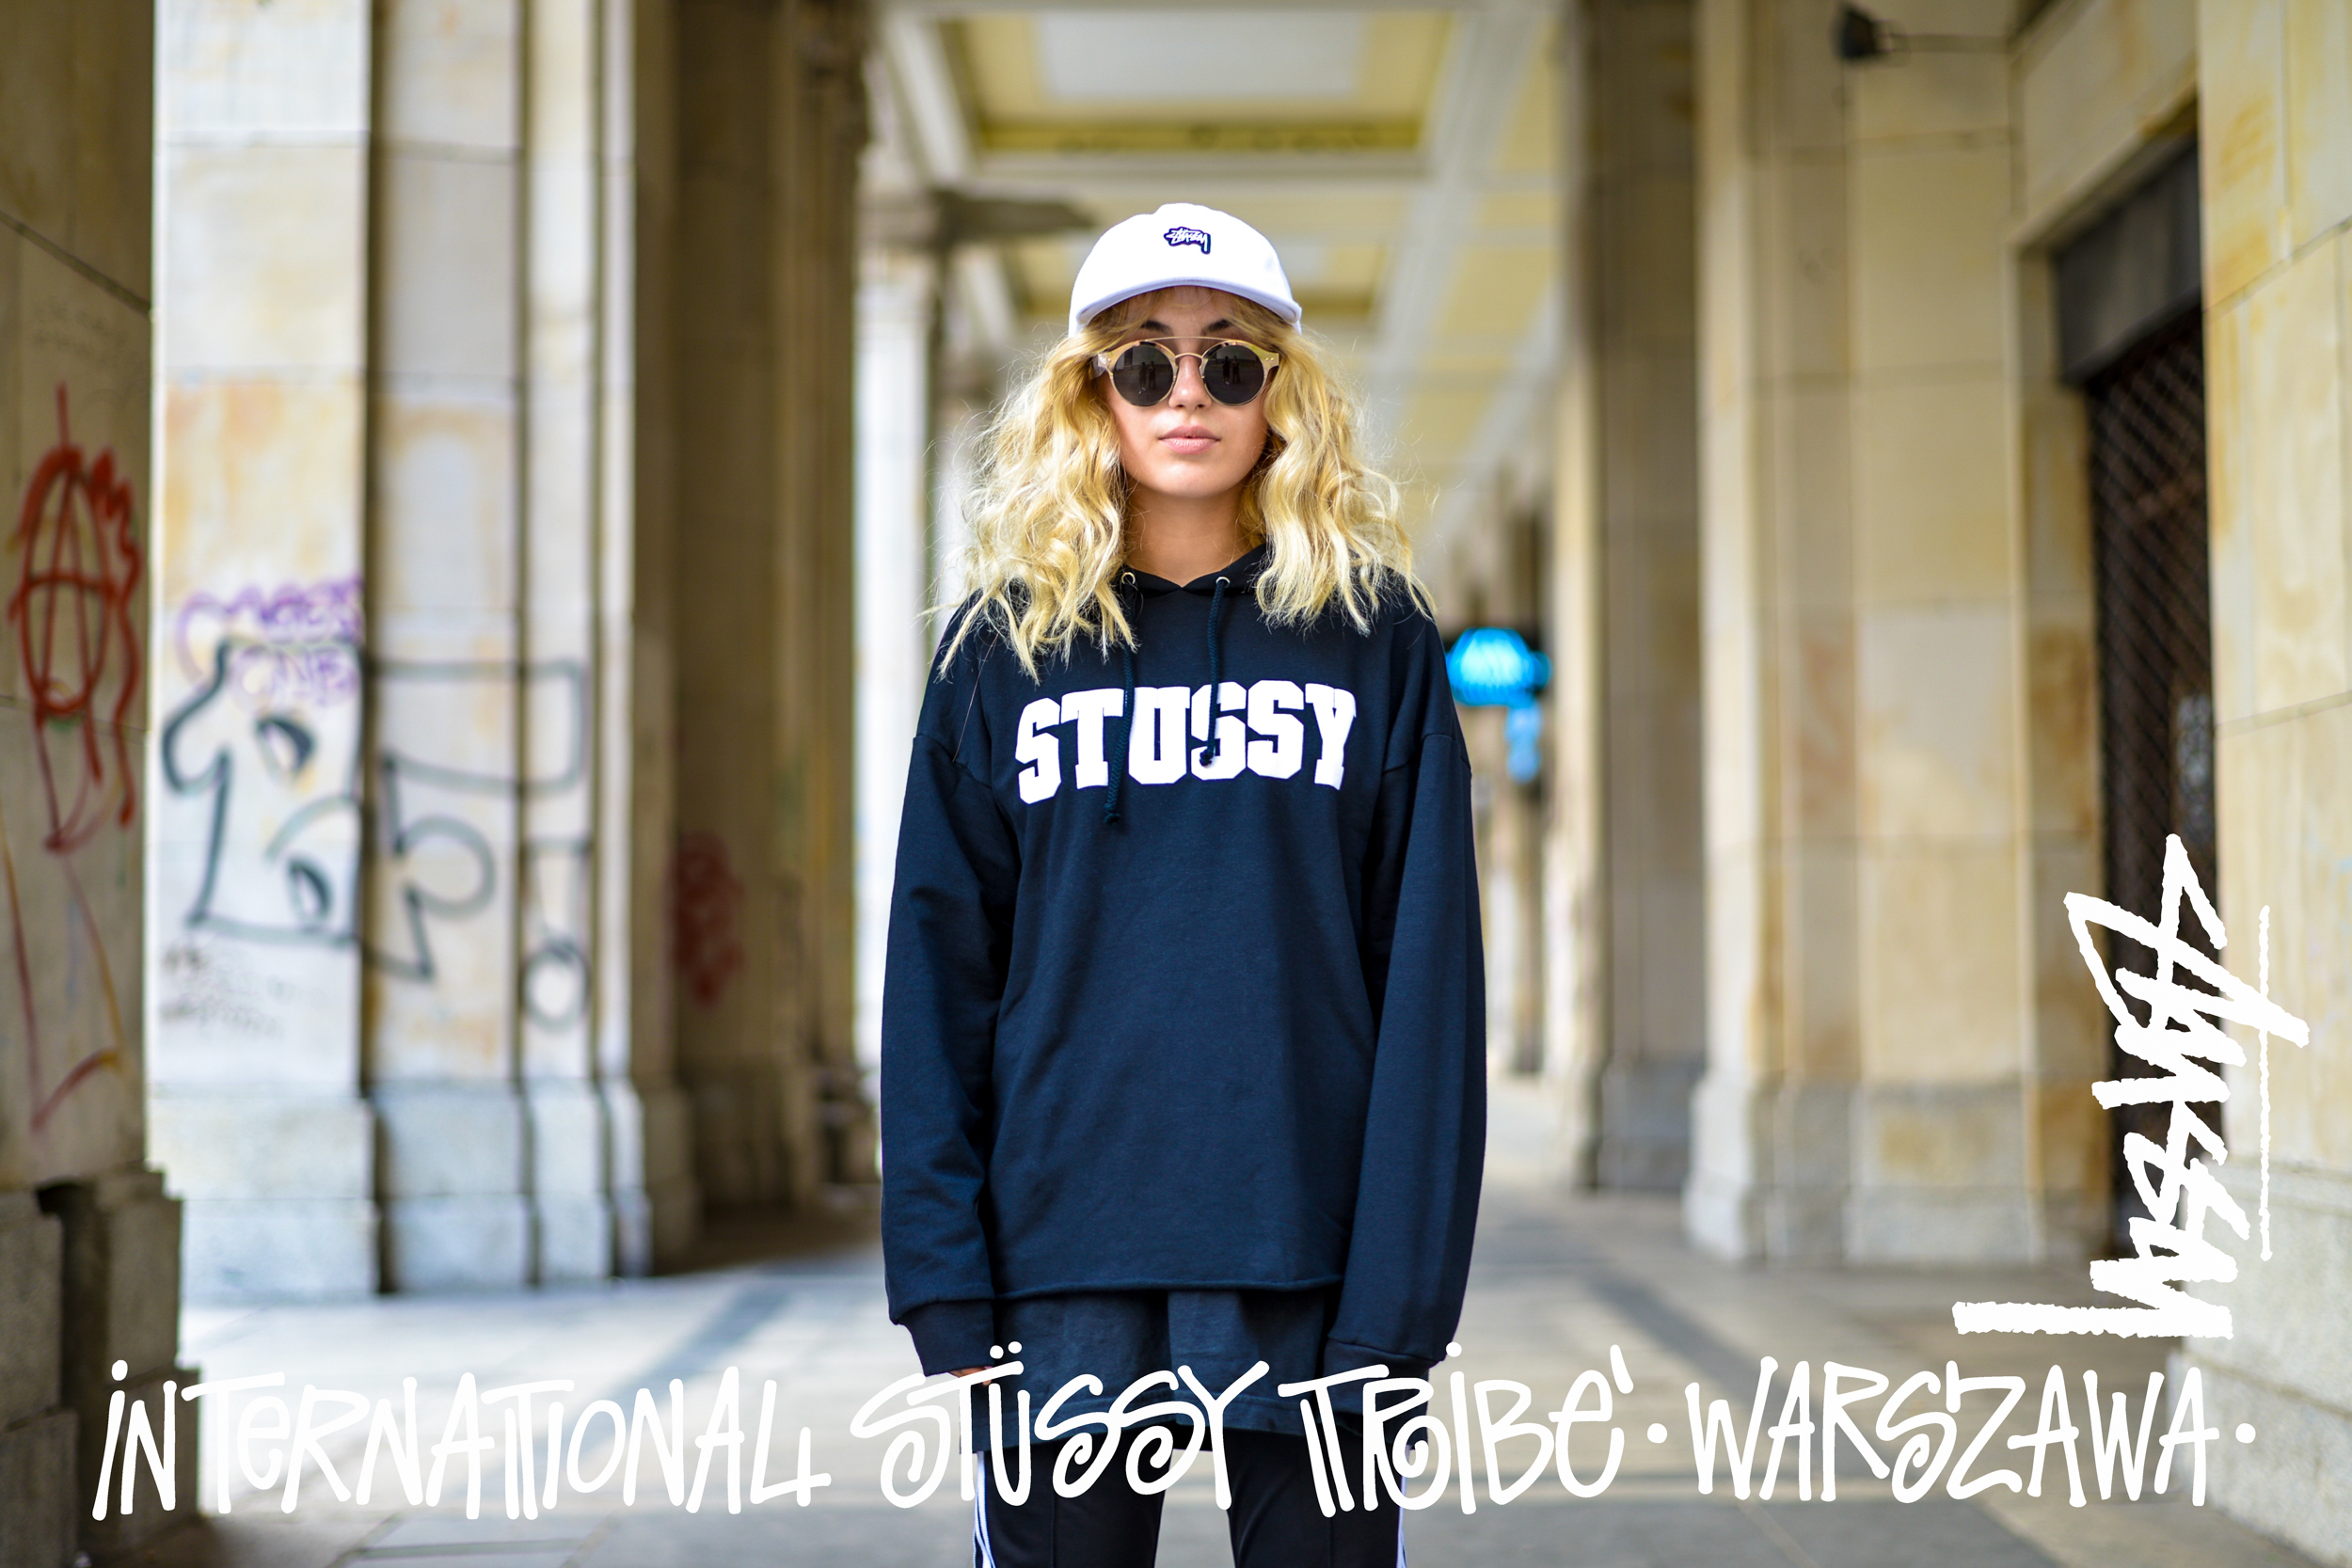 KXM x Stüssy International Tribe: Warszawa.